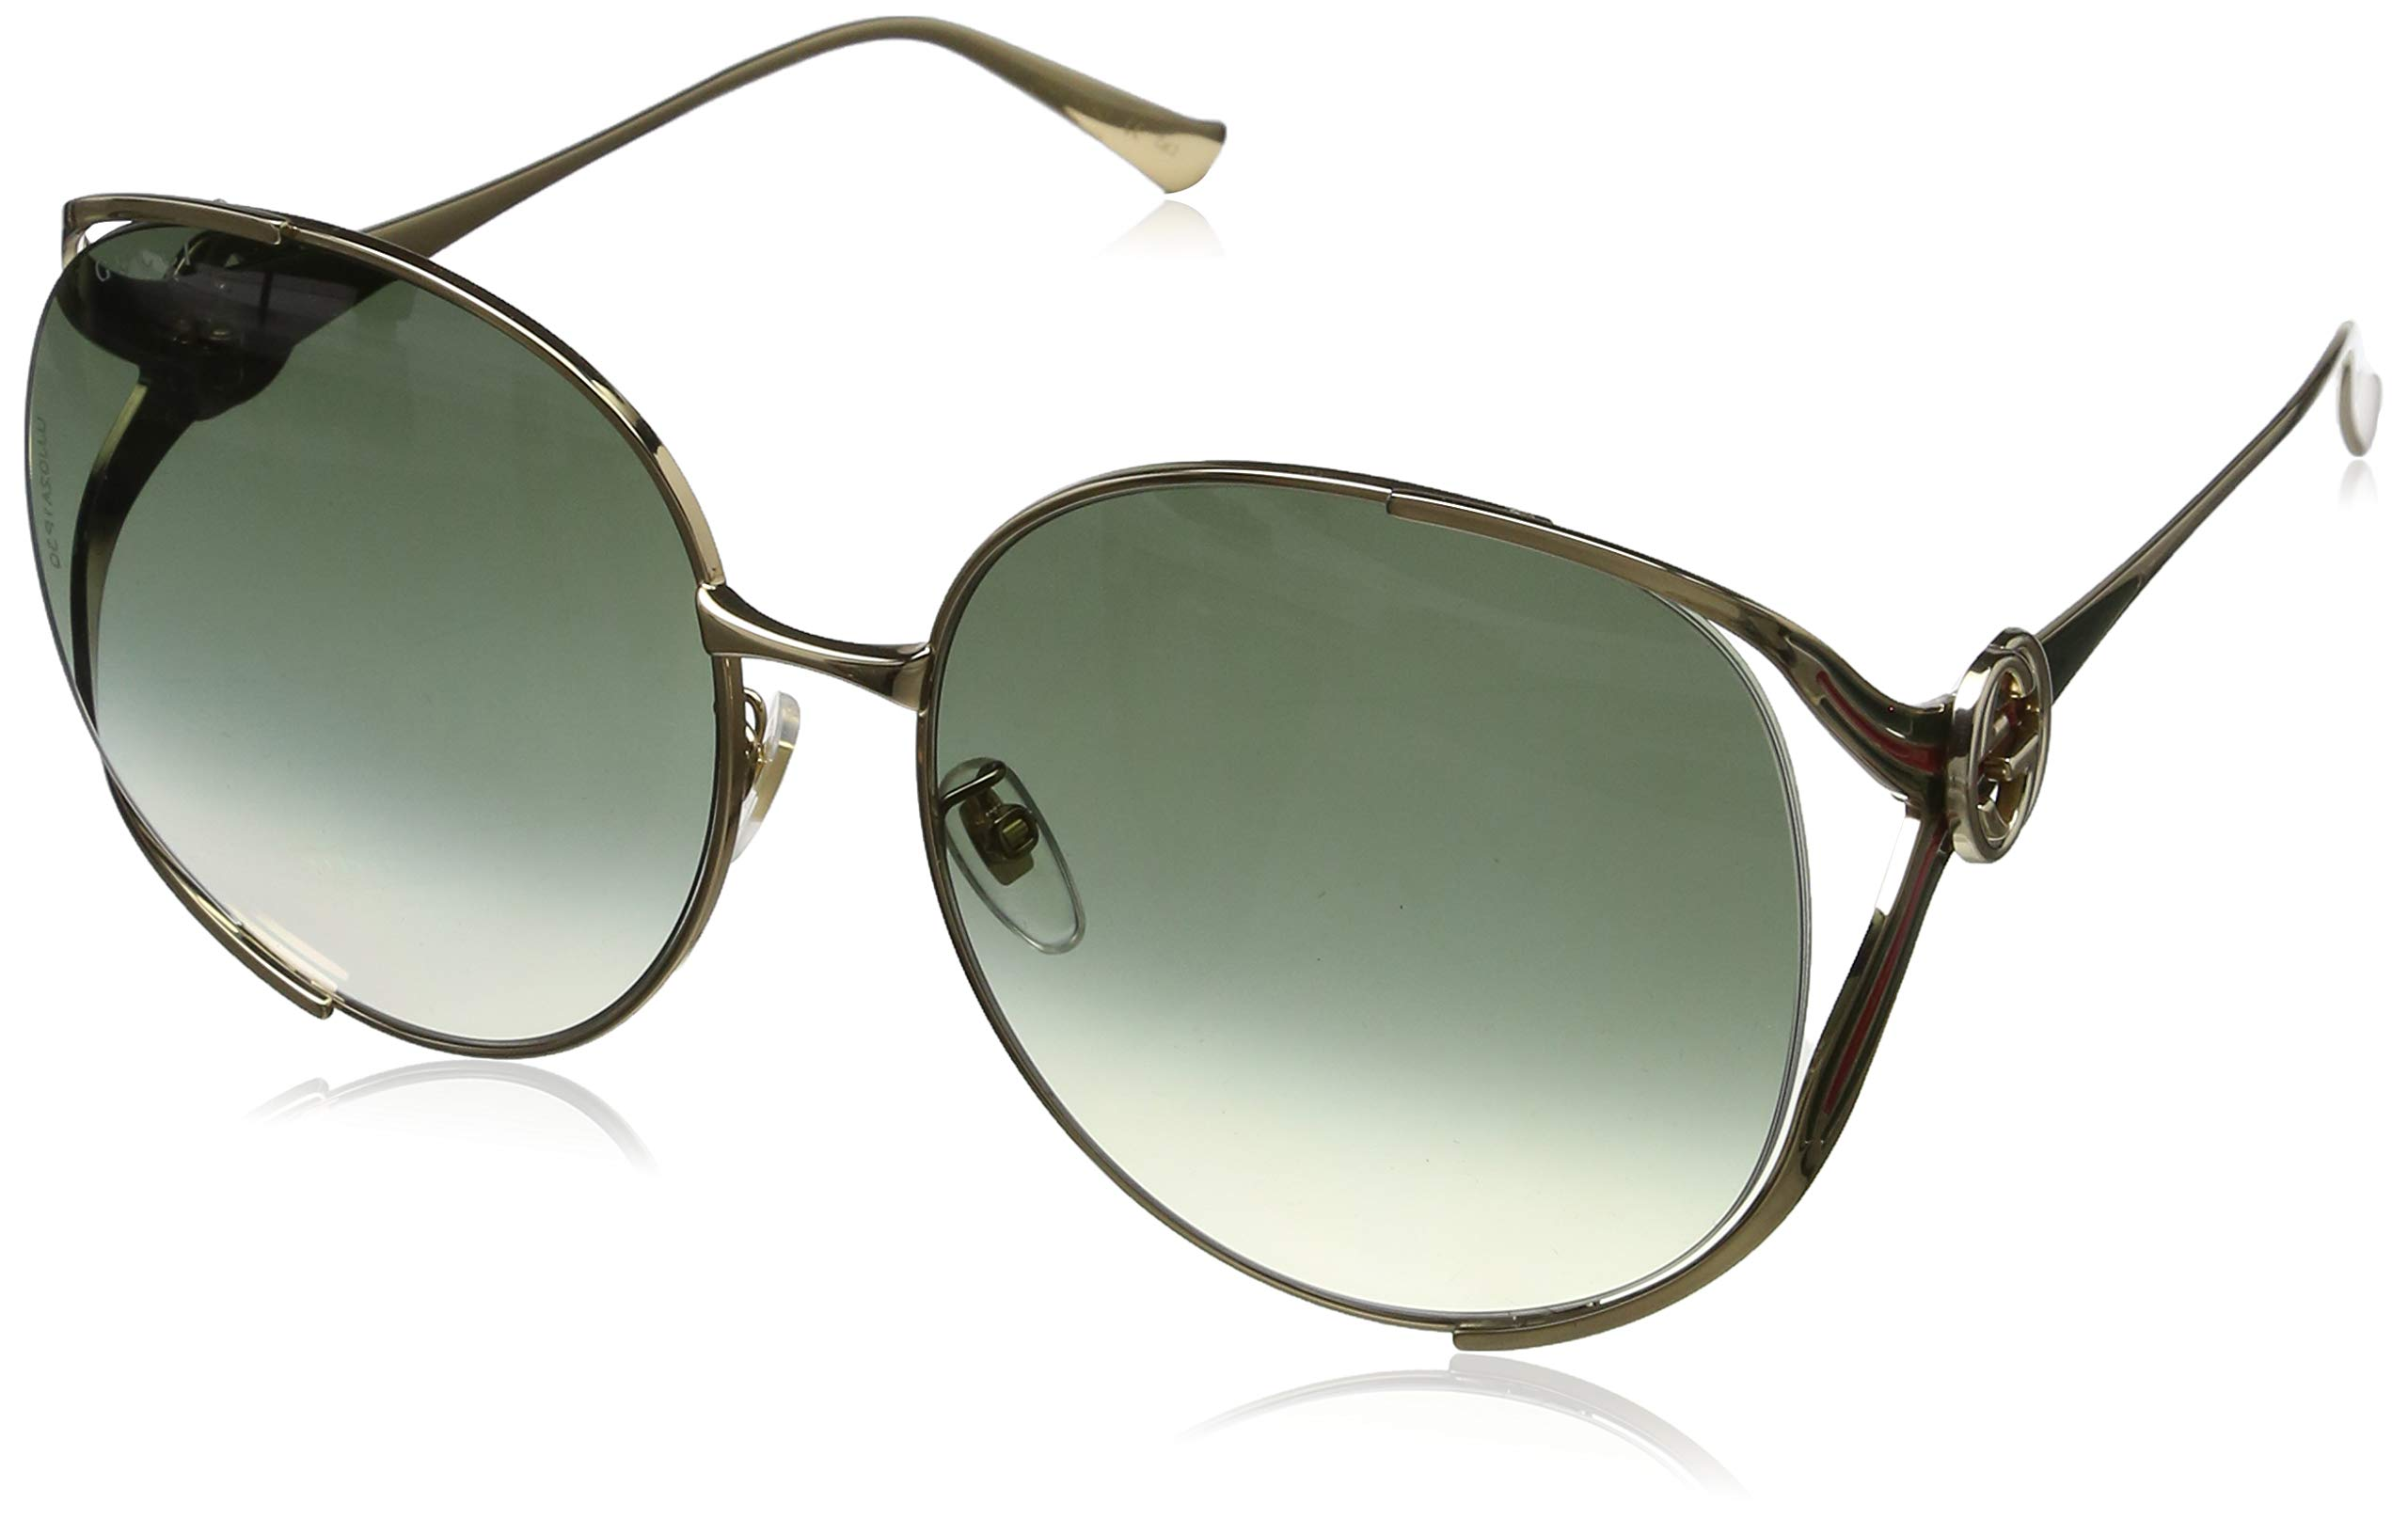 Gucci sunglasses (GG-0225-S 002) Gold - Blue - Brown grey black Gradient lenses by Gucci